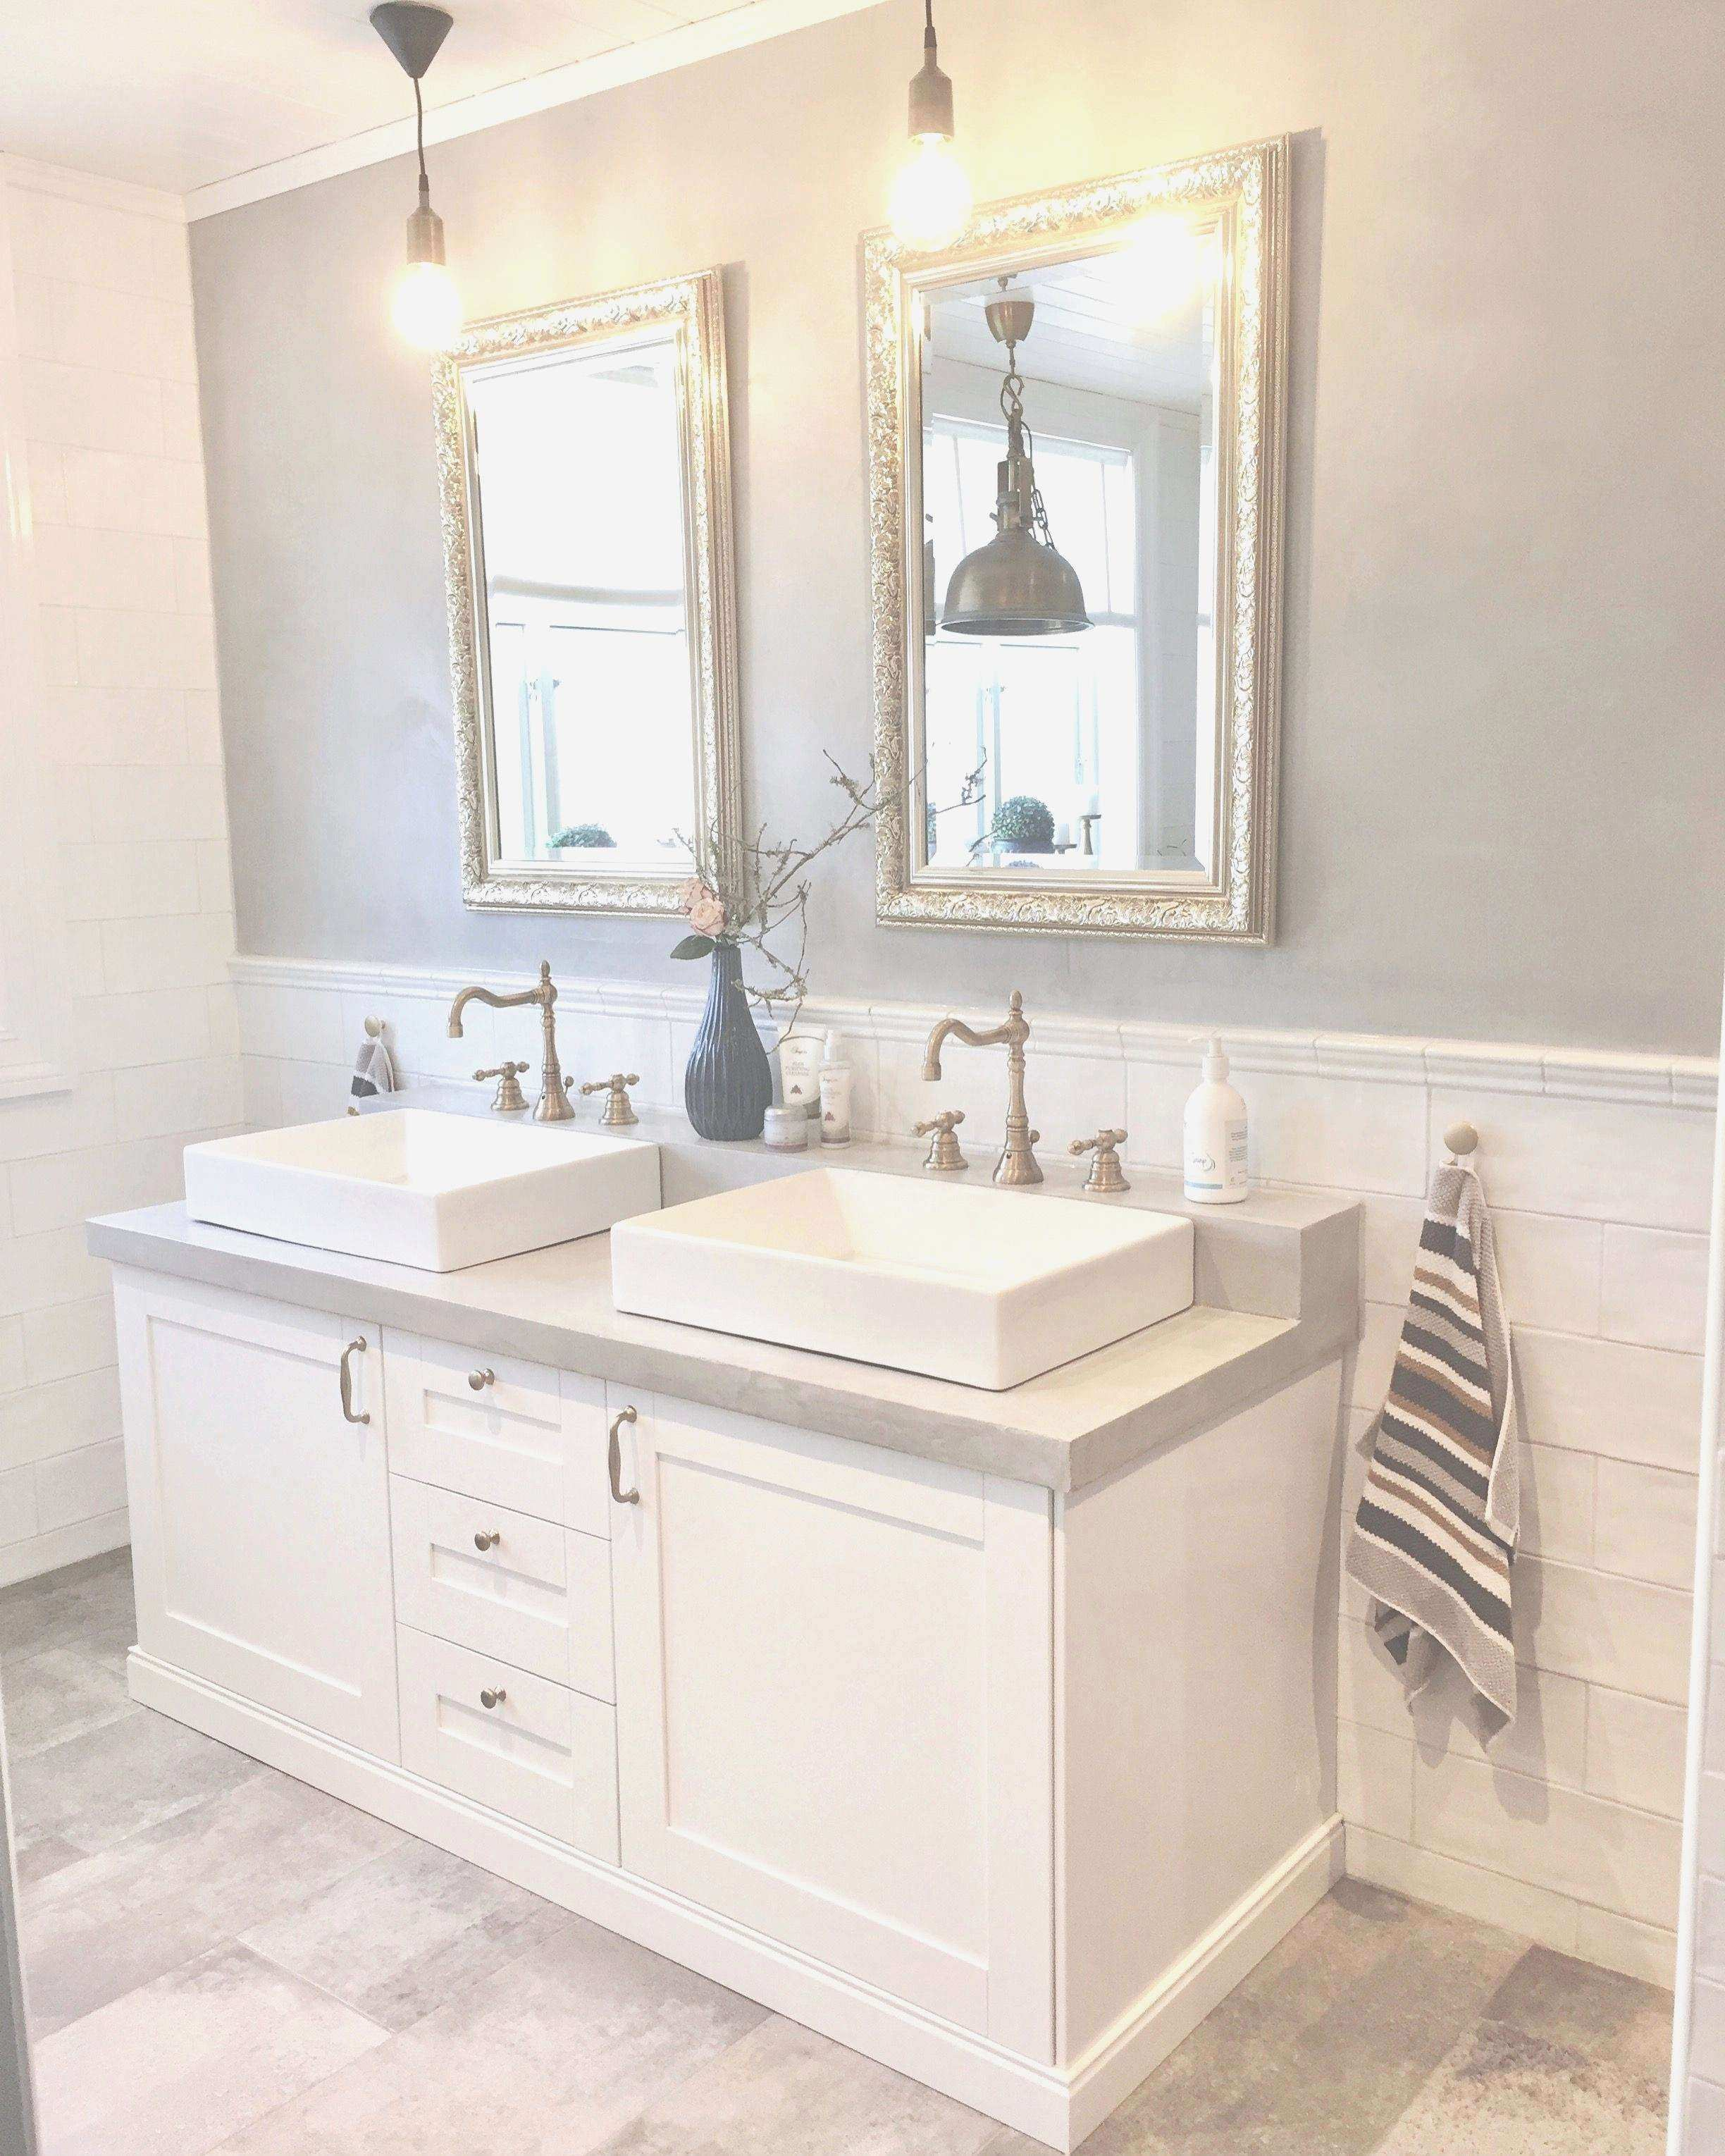 Awesome Bathroom Picture Ideas Lovely Tag toilet Ideas 0d Best